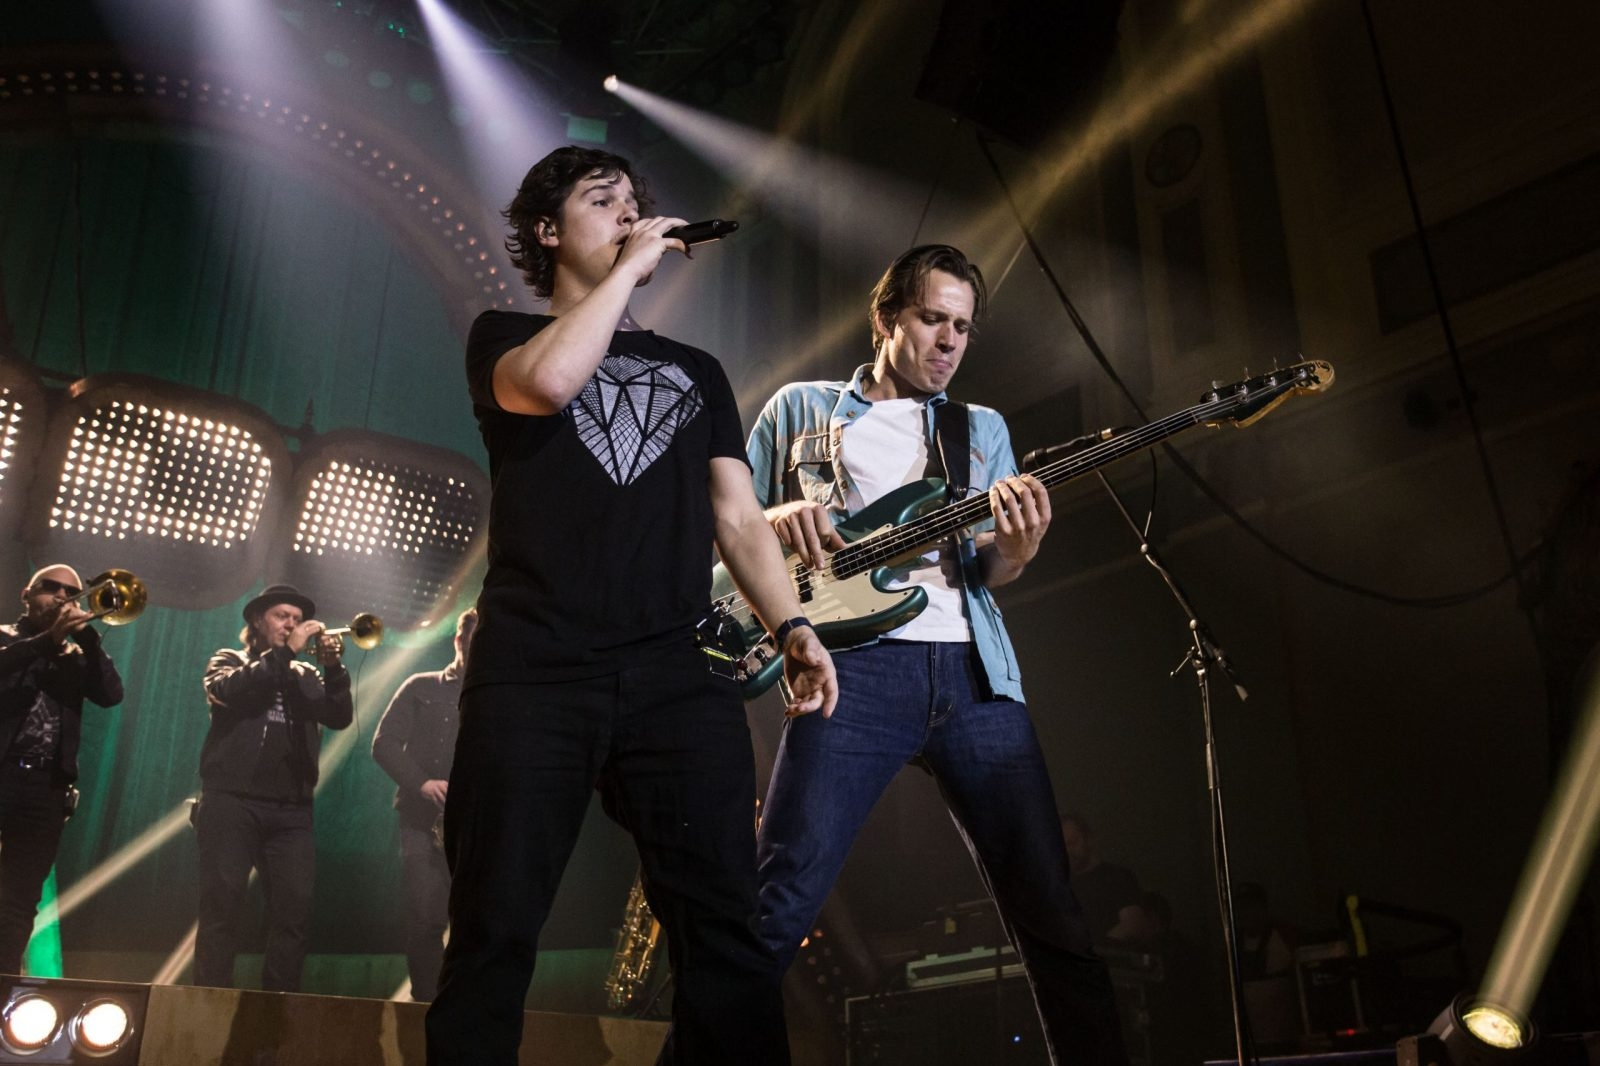 Lukas Graham @ The Ulster Hall 13